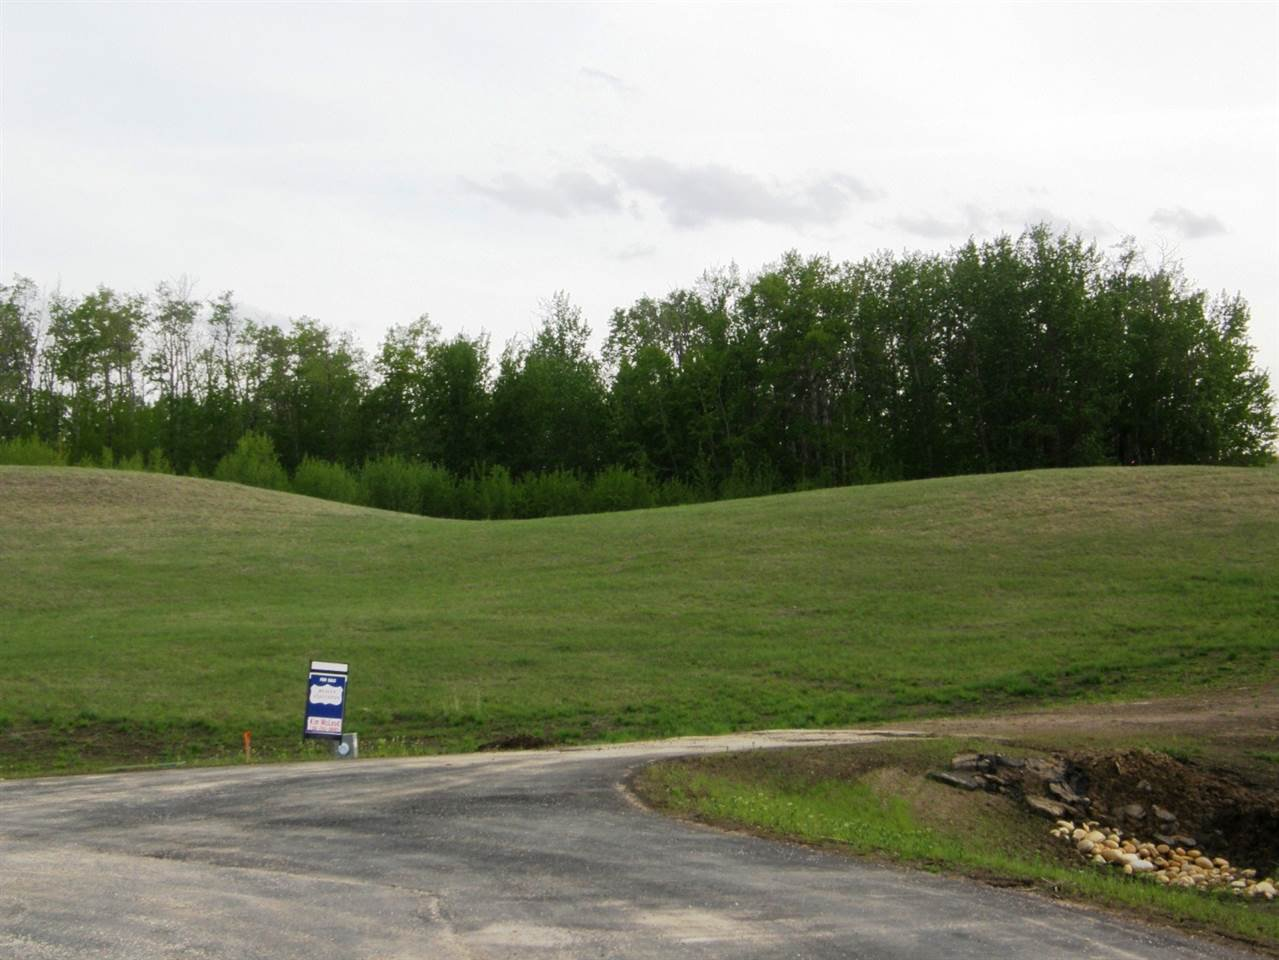 Main Photo: 9 53214 RGE RD 13 Road: Rural Parkland County Rural Land/Vacant Lot for sale : MLS®# E4061202